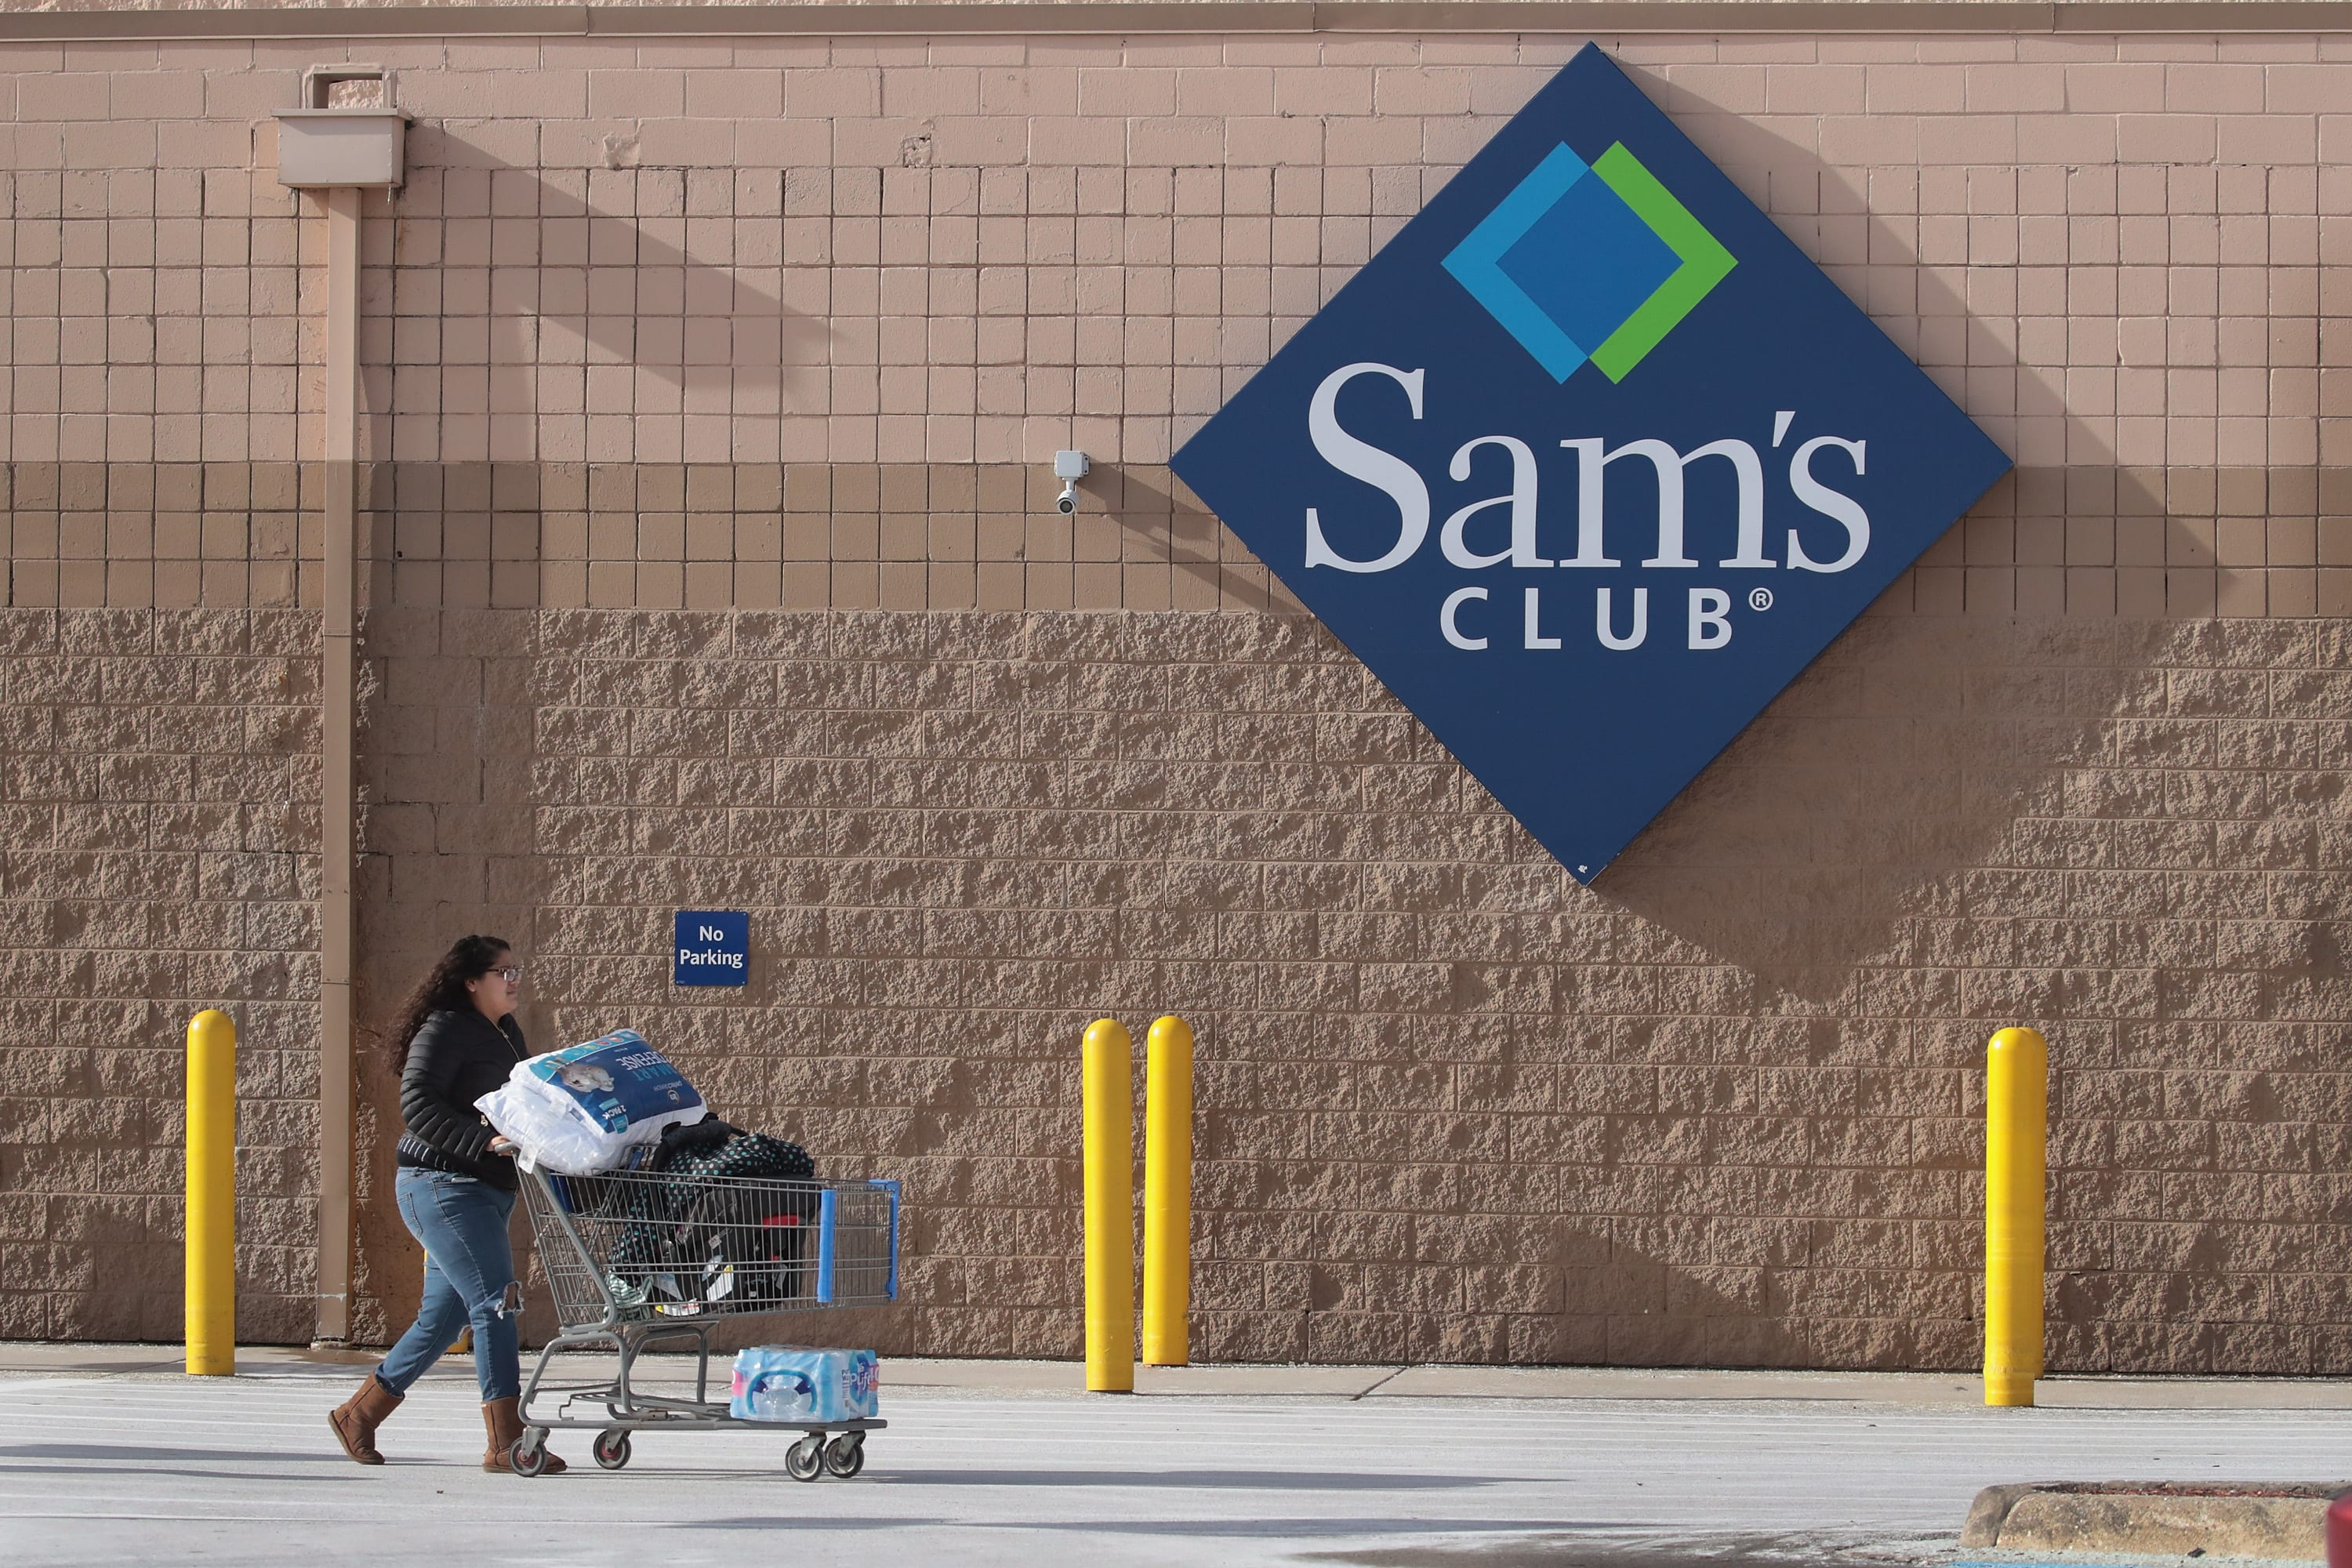 Sam's Club expands same-day grocery delivery through Instacart